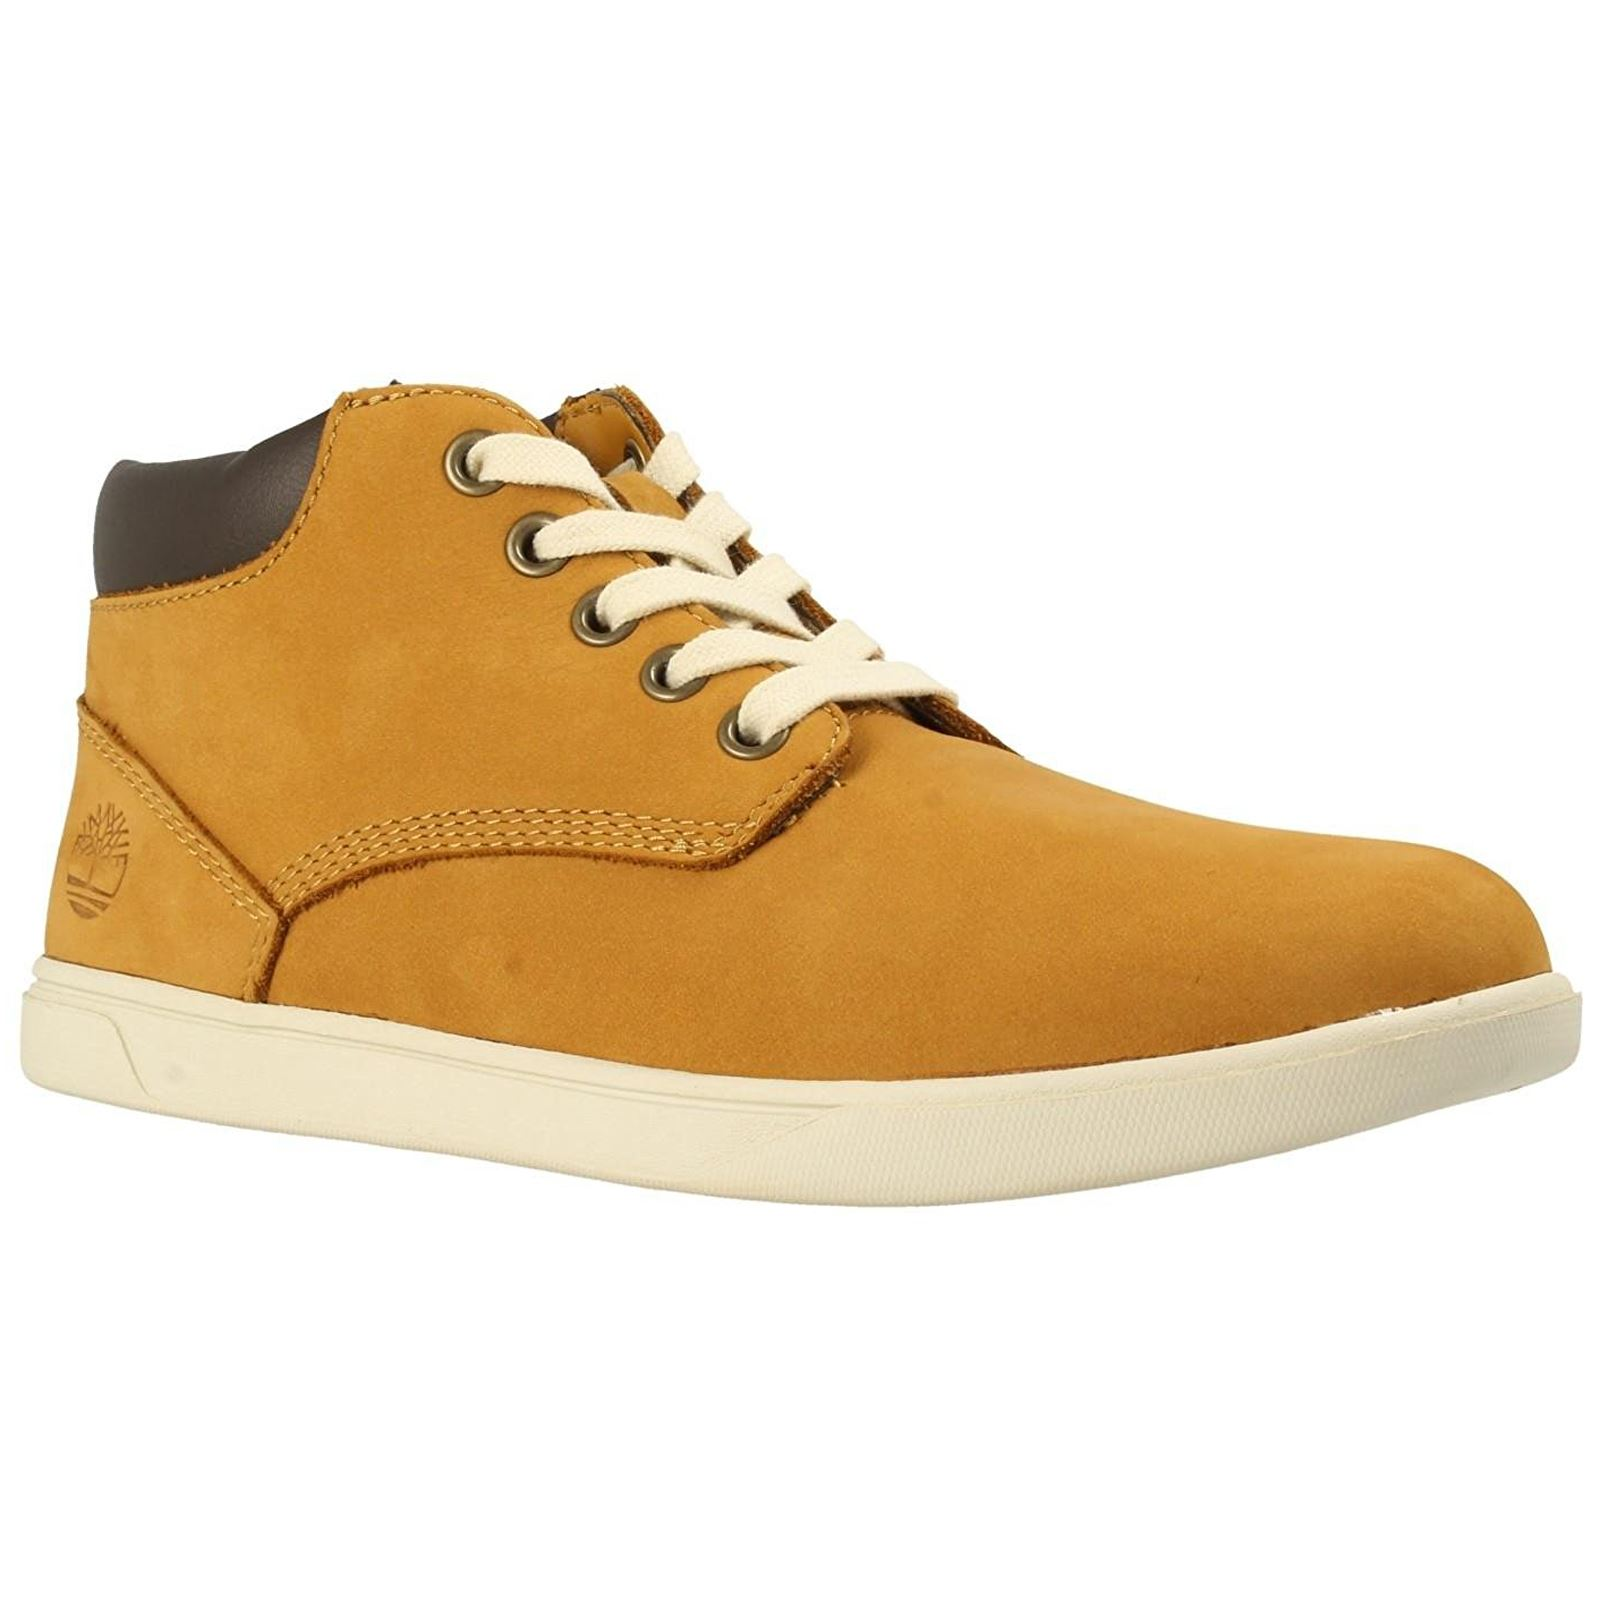 Details about Timberland Earthkeepers Groveton Chukka Wheat Youth Nubuck  Zip-up Ankle Boots 6d4a4996e